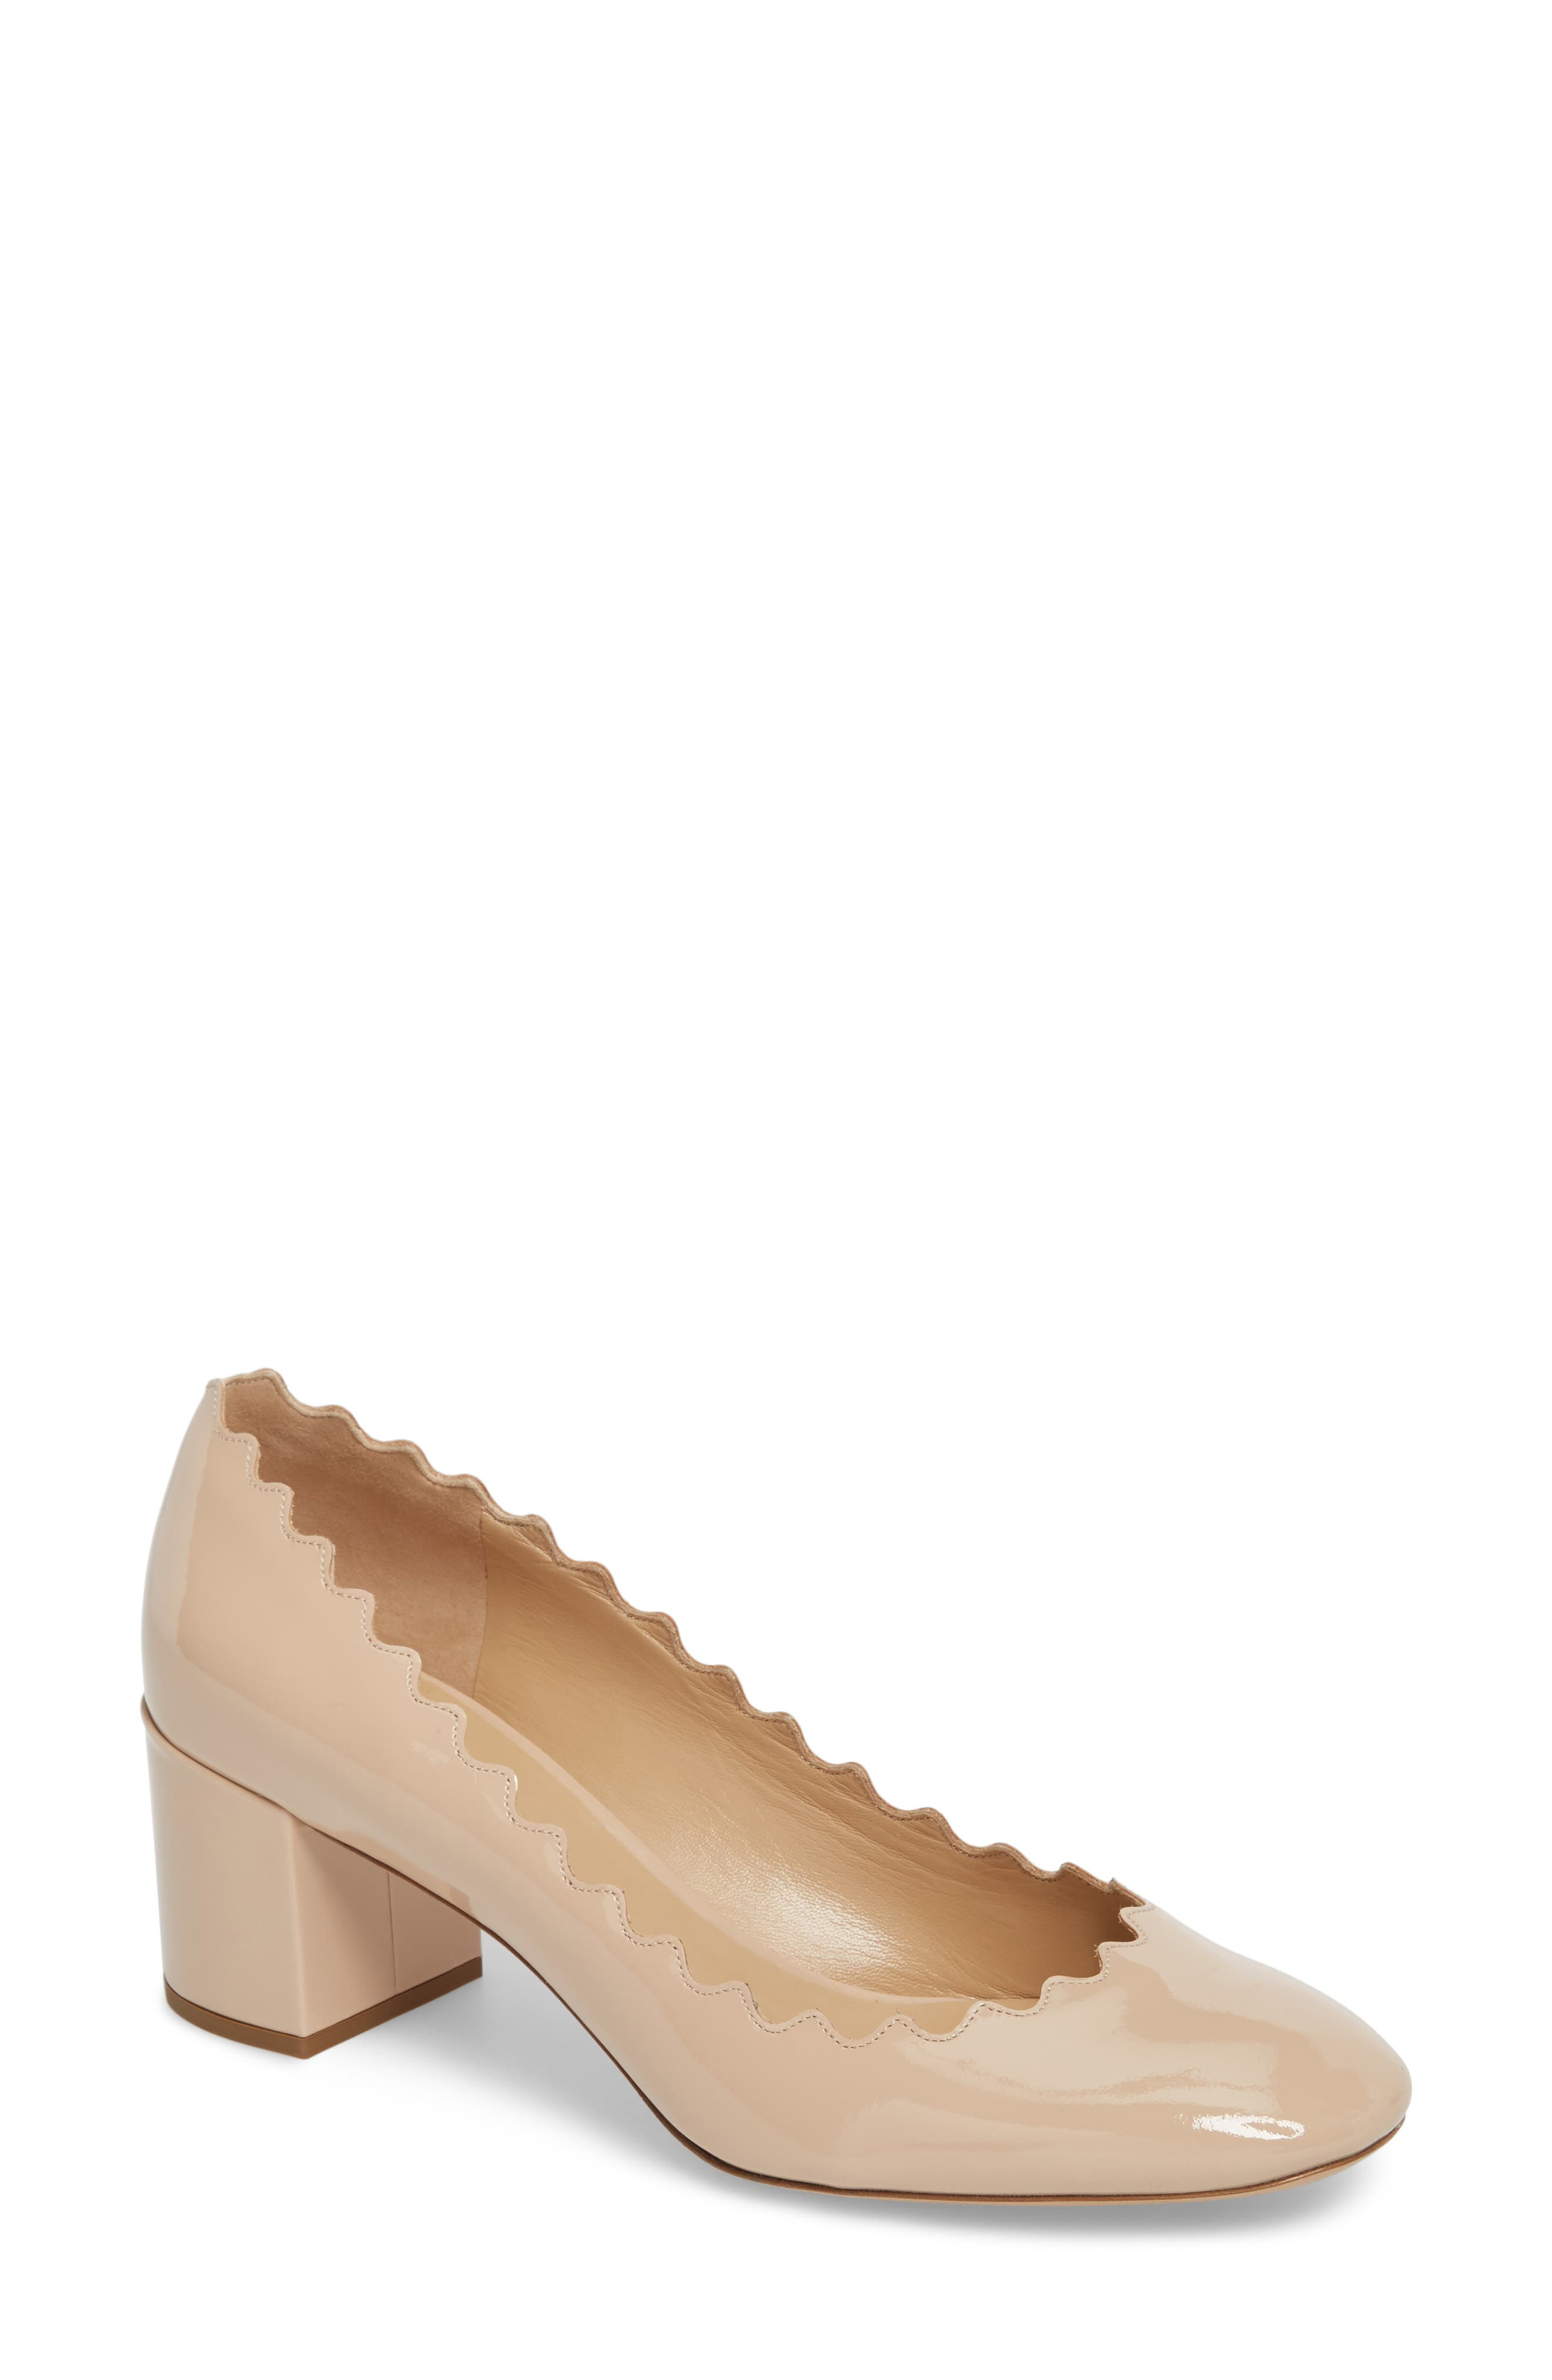 Lauren Pump,                             Main thumbnail 1, color,                             Mild Beige Patent